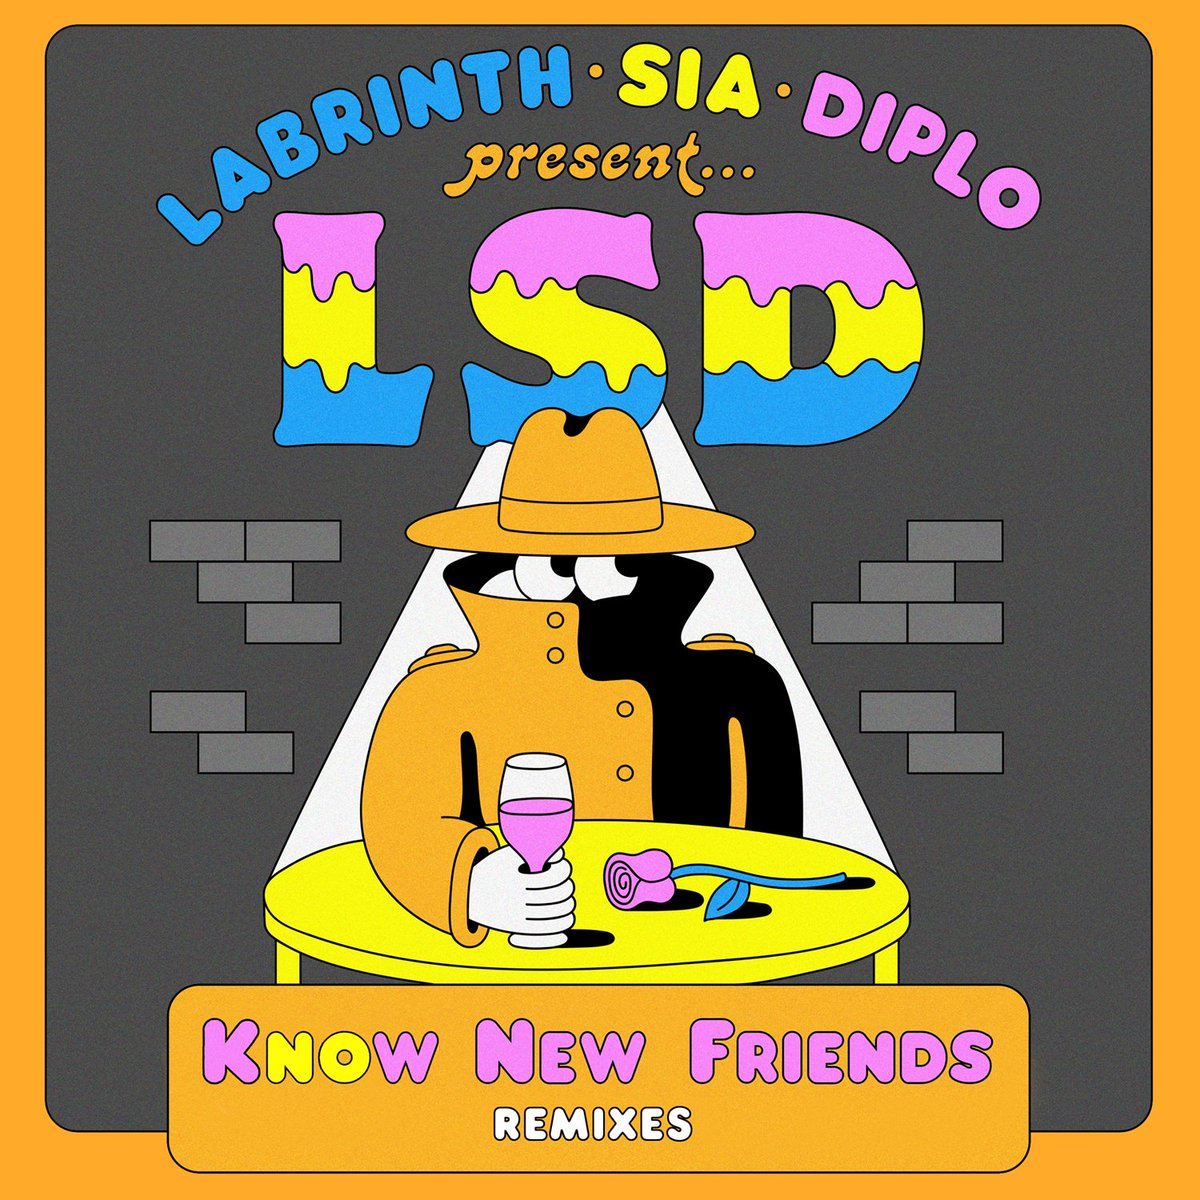 The dance party begins ???? #LSD Know New Friends remixes out now https://t.co/GYv1iJQer9 - Team Sia https://t.co/G5r9hCuPO2